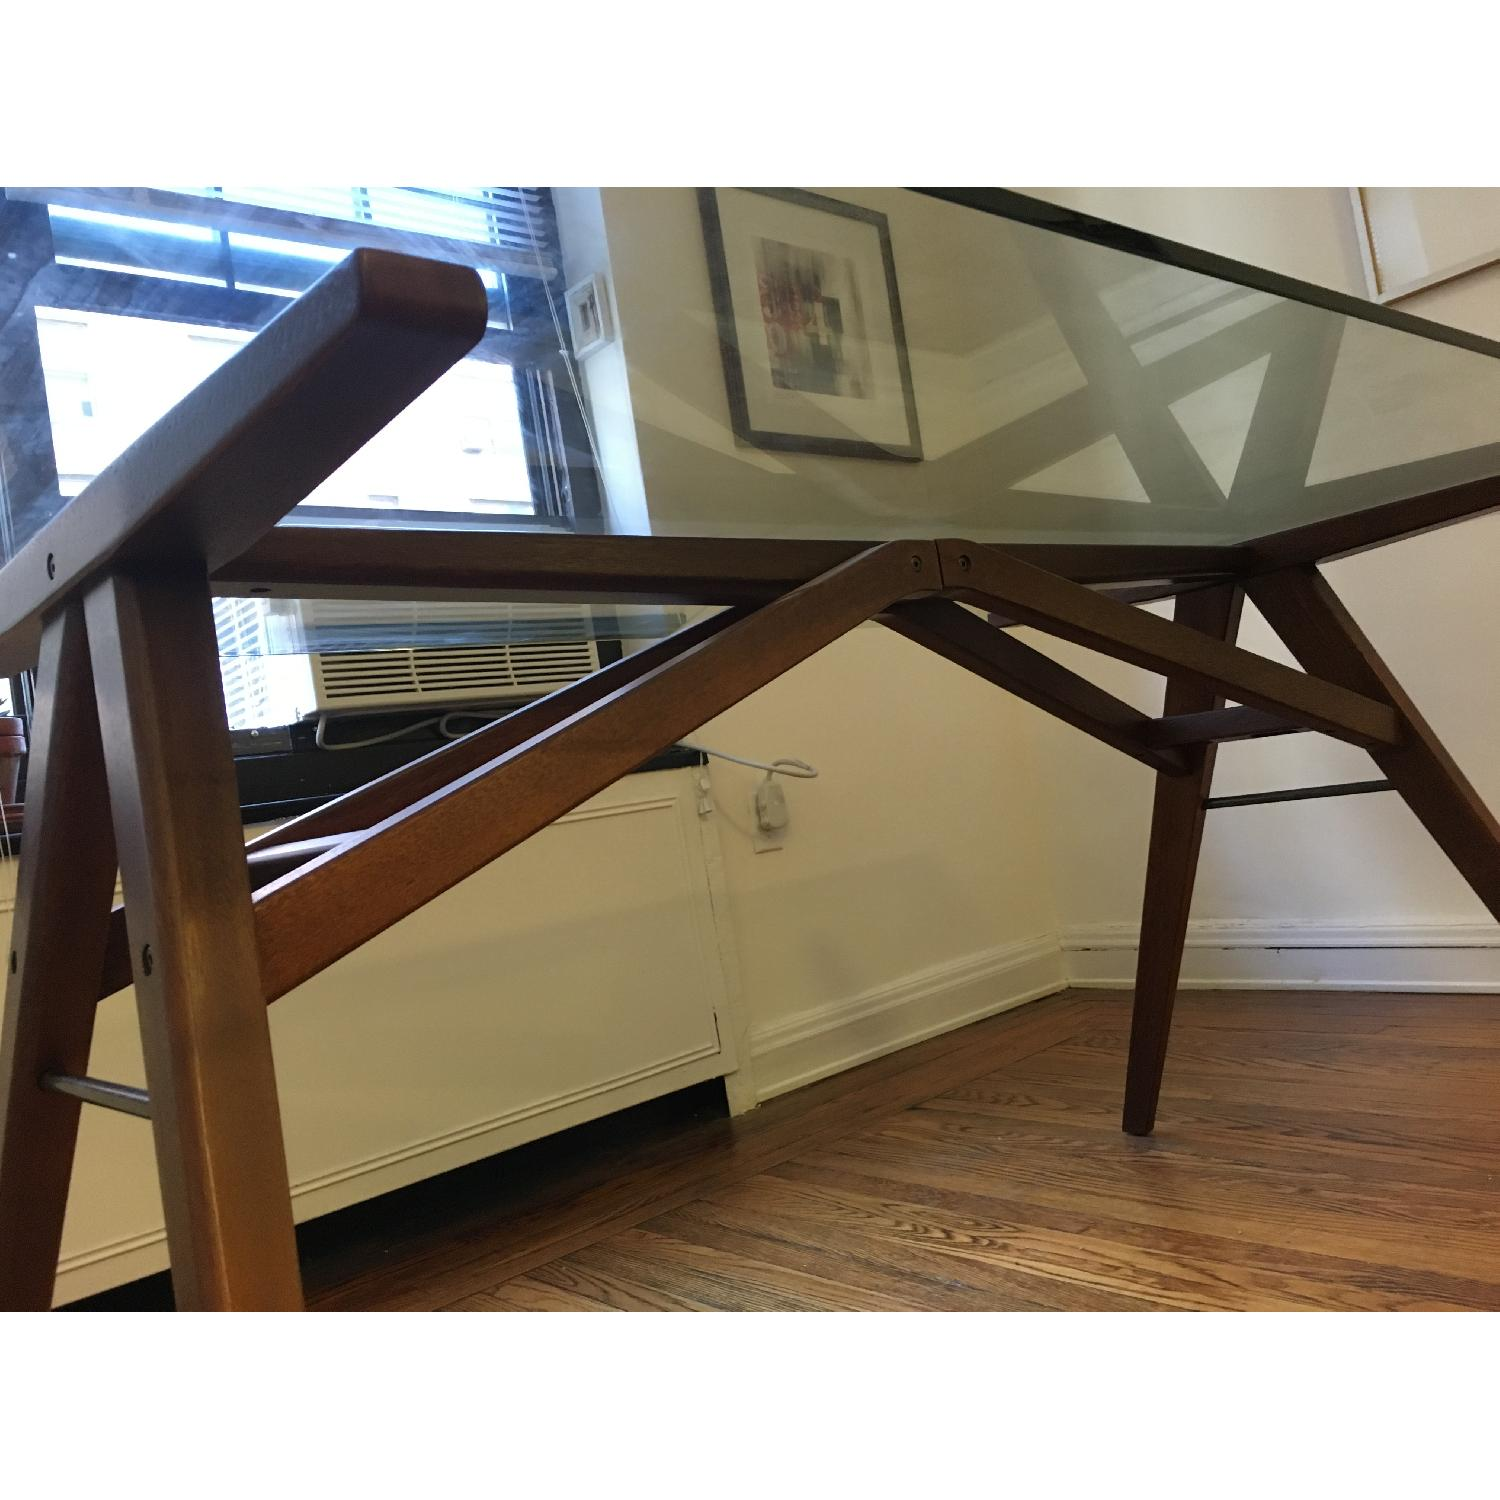 West Elm Modern Glass & Walnut-Stained Dining Table - image-4